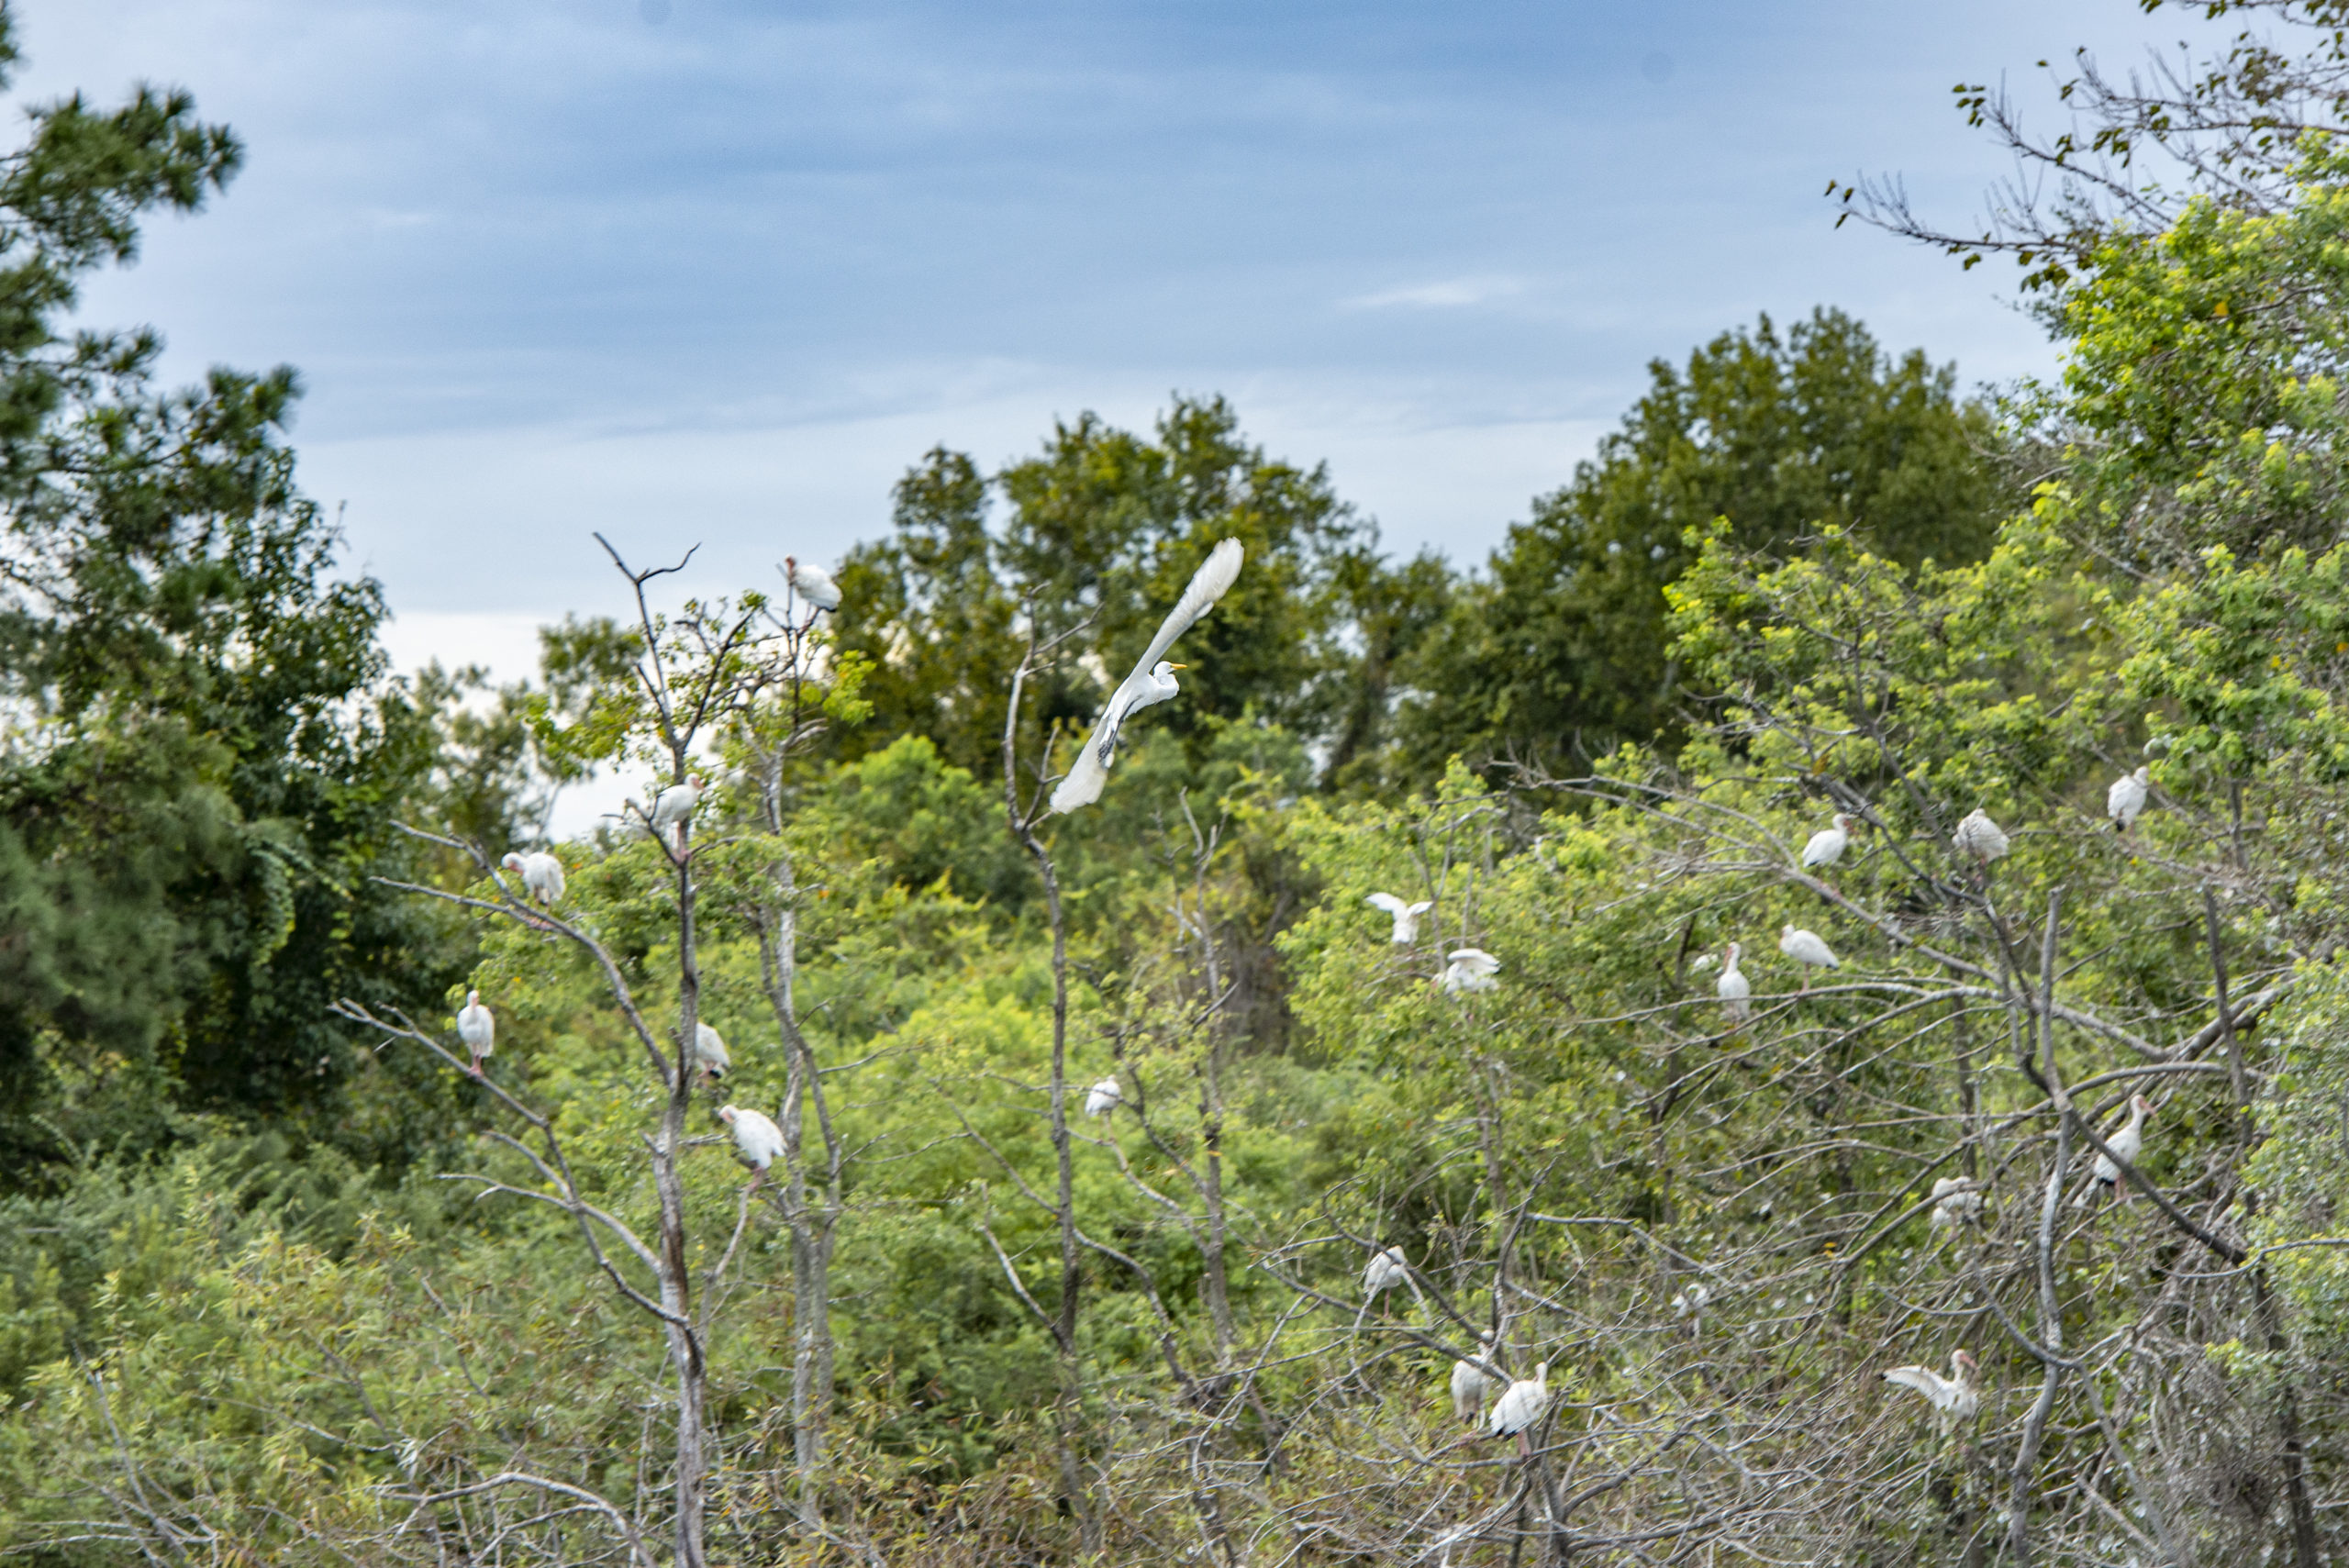 Birding Day at the Dill Sanctuary